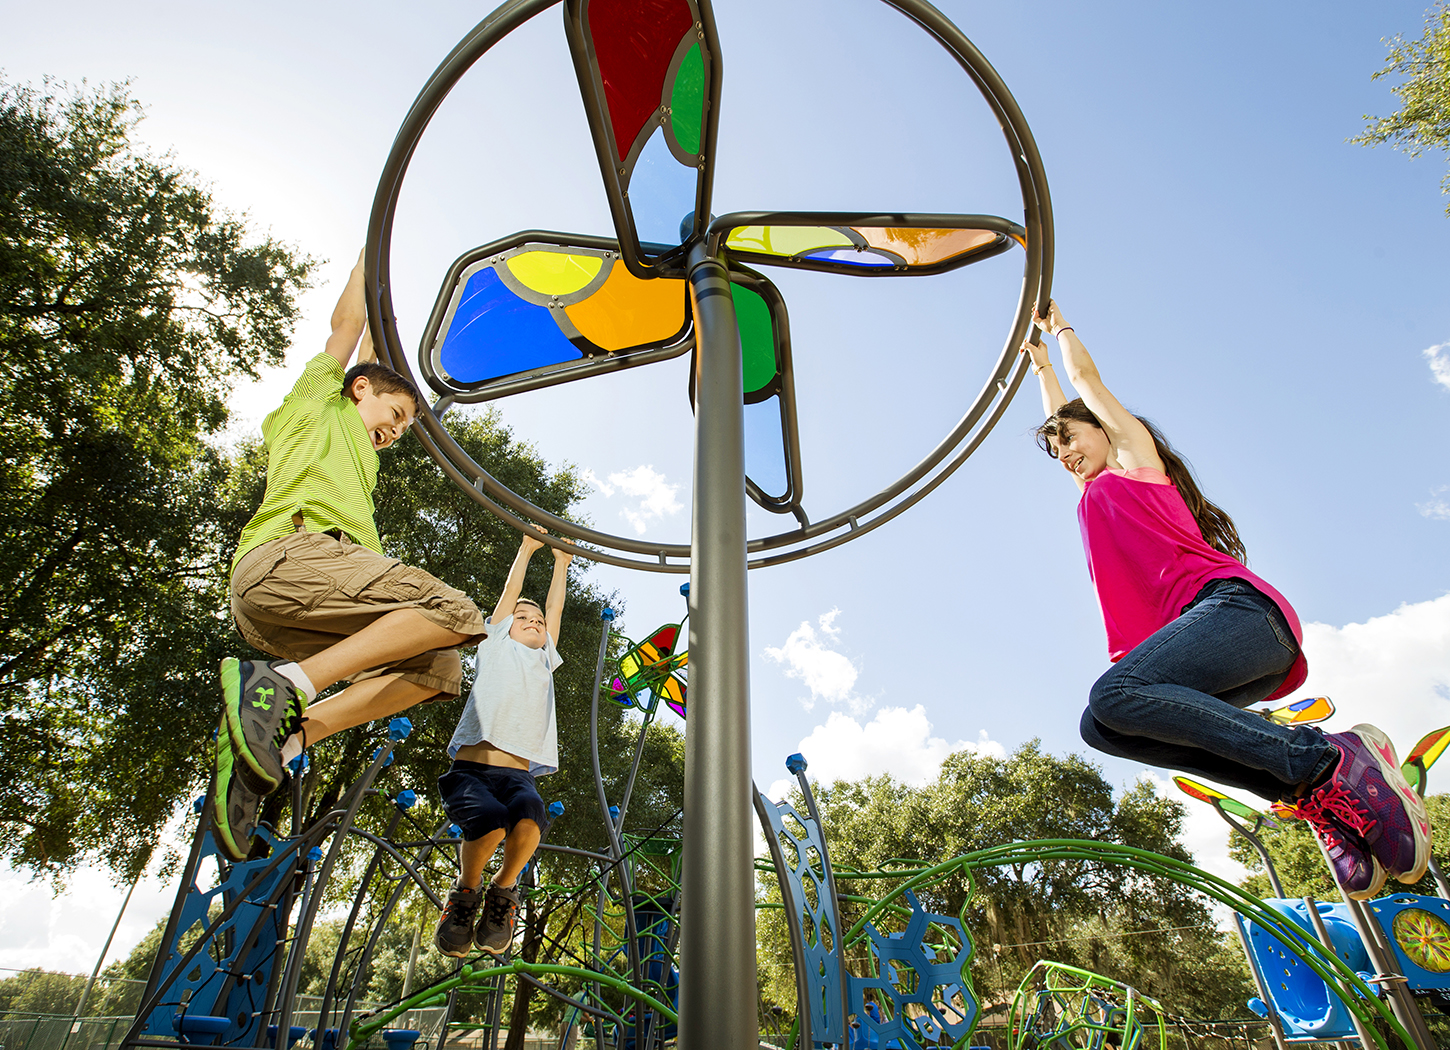 GameTime Breathes New Life into a Florida Park with Innovative Playground Equipment